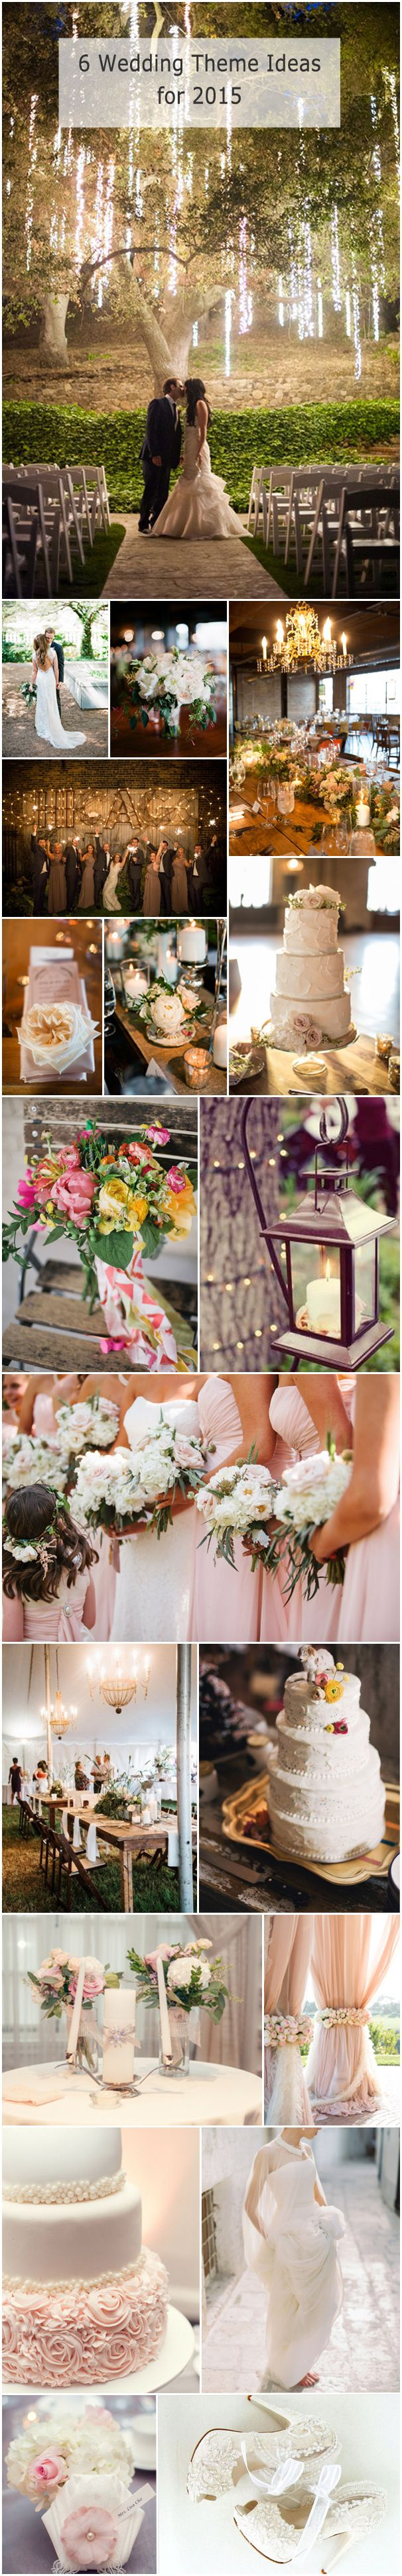 Top 6 Themes for 2015 Trending Wedding Ideas